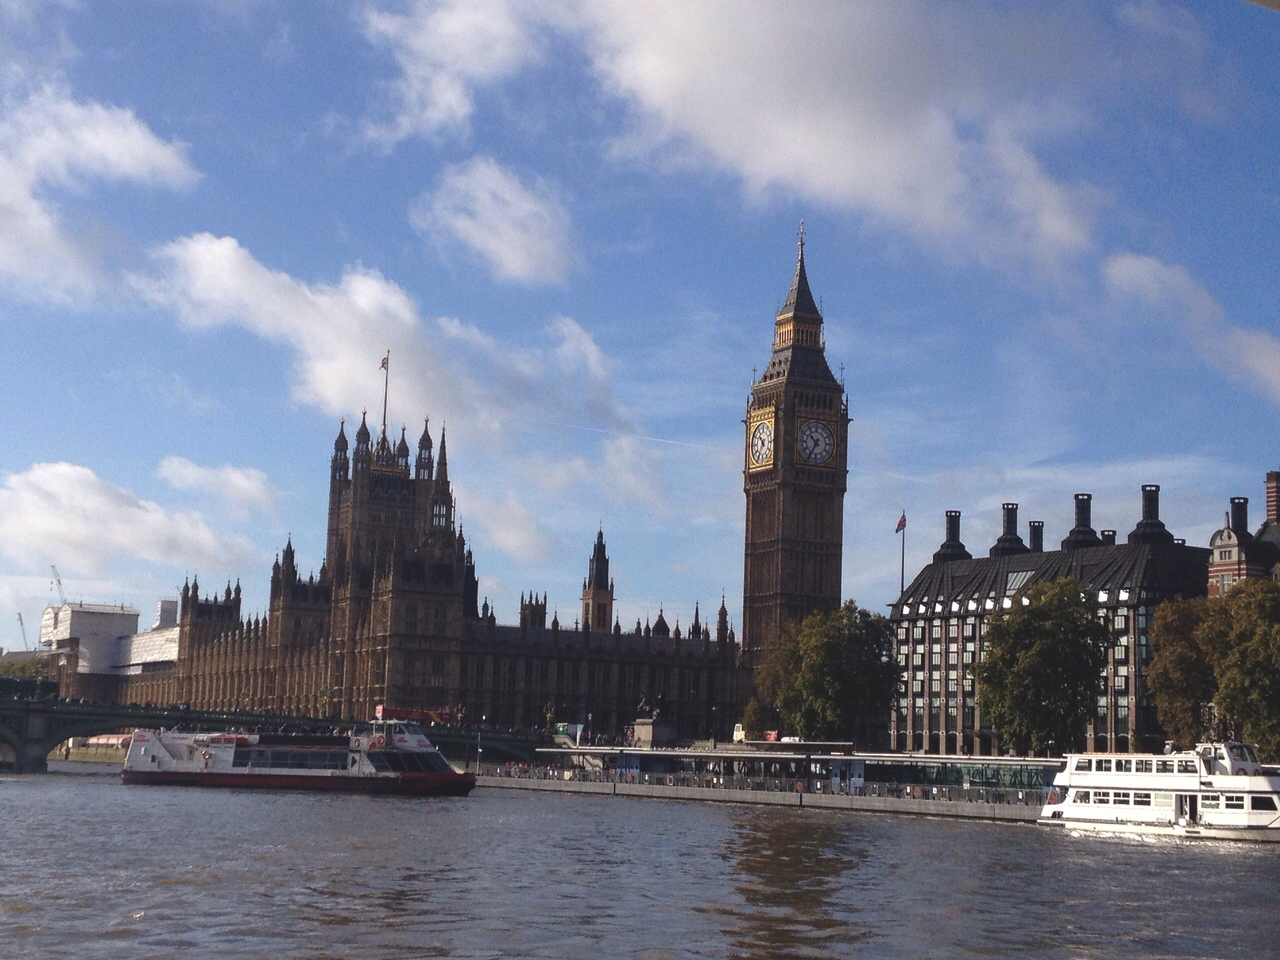 The Parliament and Big Ben view from our boat!